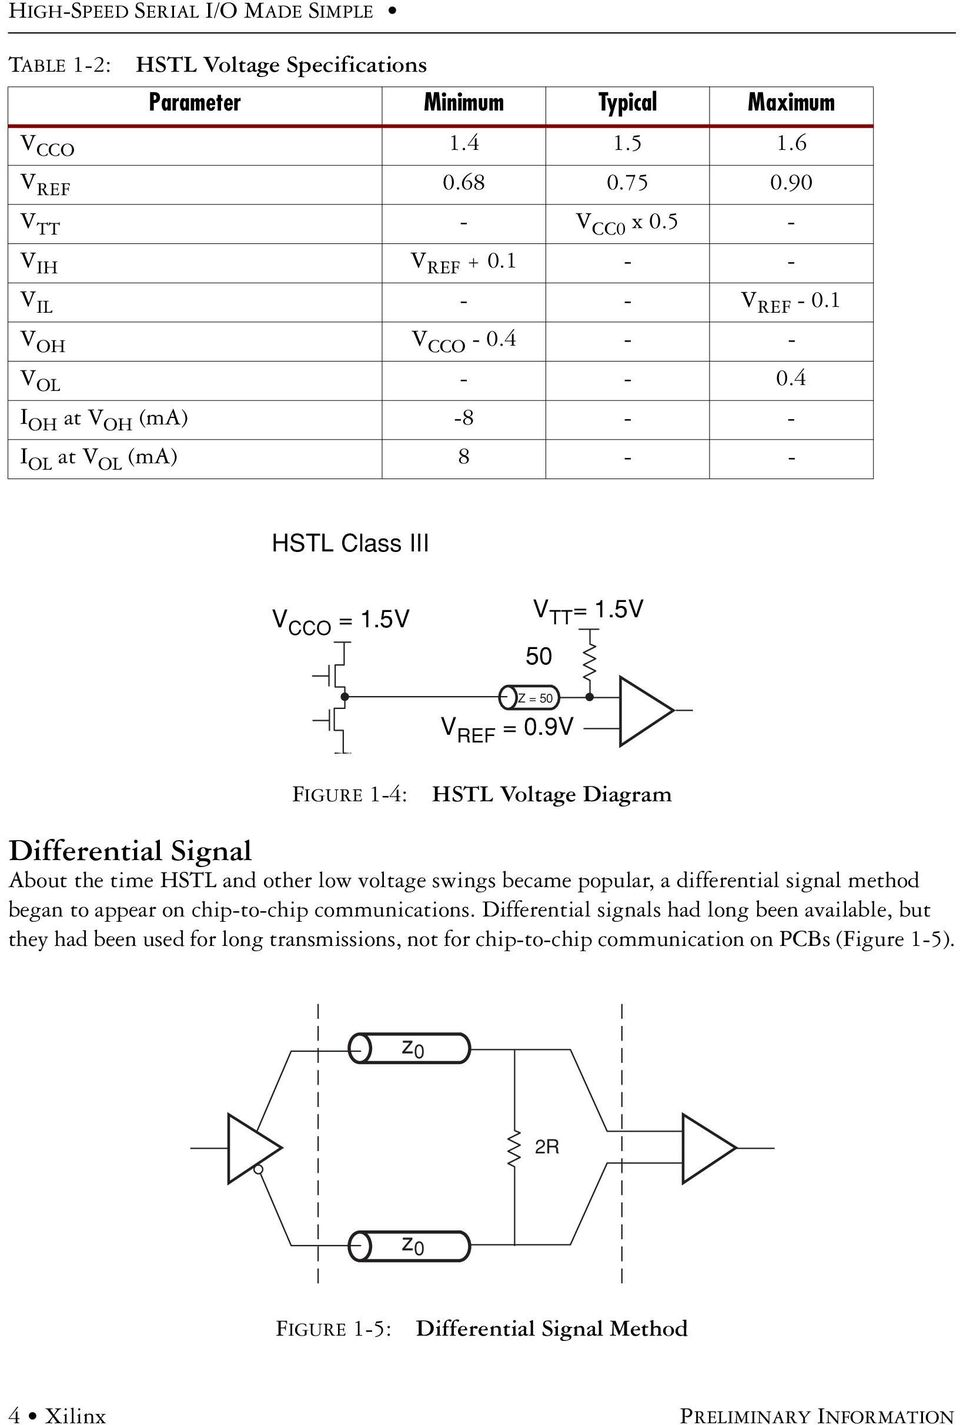 9V FIGURE 1-4: HSTL Voltage Diagram Differential Signal About the time HSTL and other low voltage swings became popular, a differential signal method began to appear on chip-to-chip